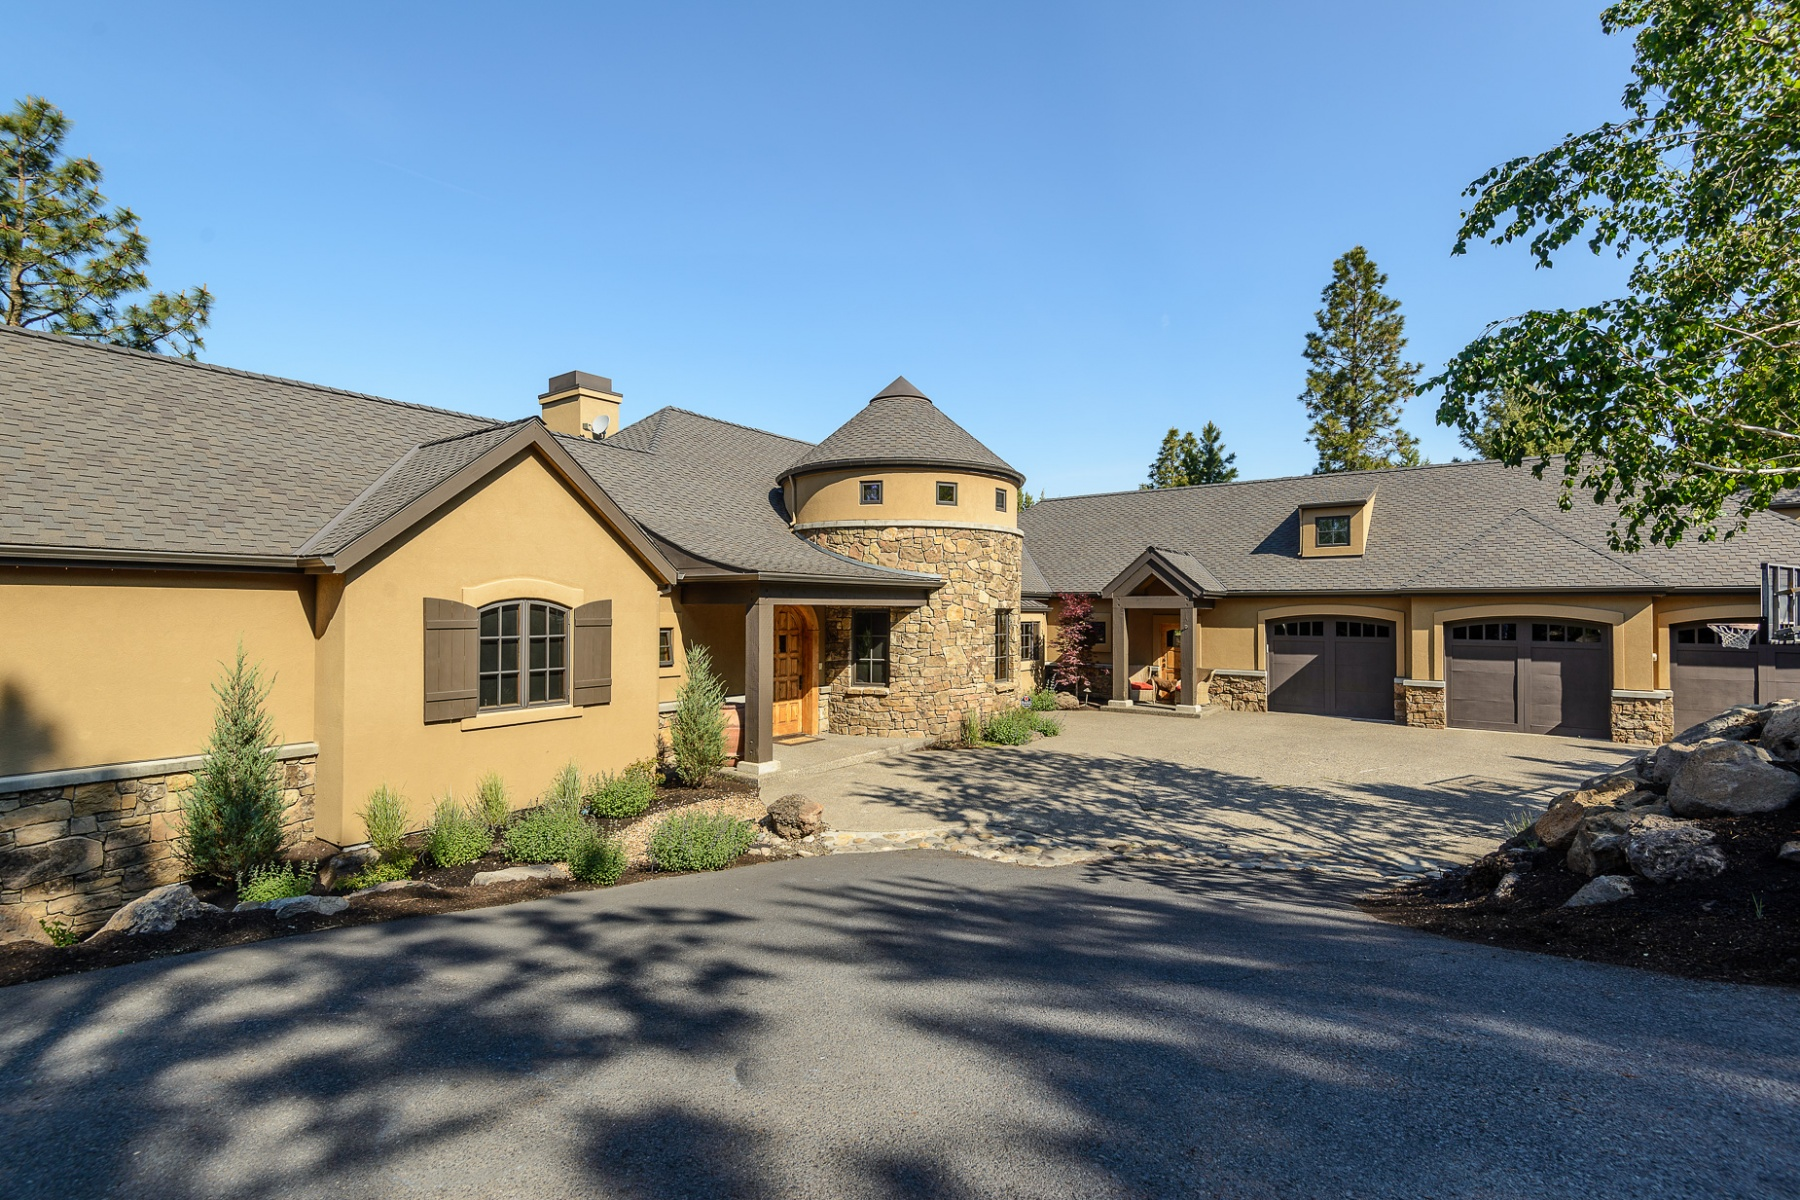 Single Family Home for Sale at 2981 NW Starview Drive, BEND Bend, Oregon, 97703 United States